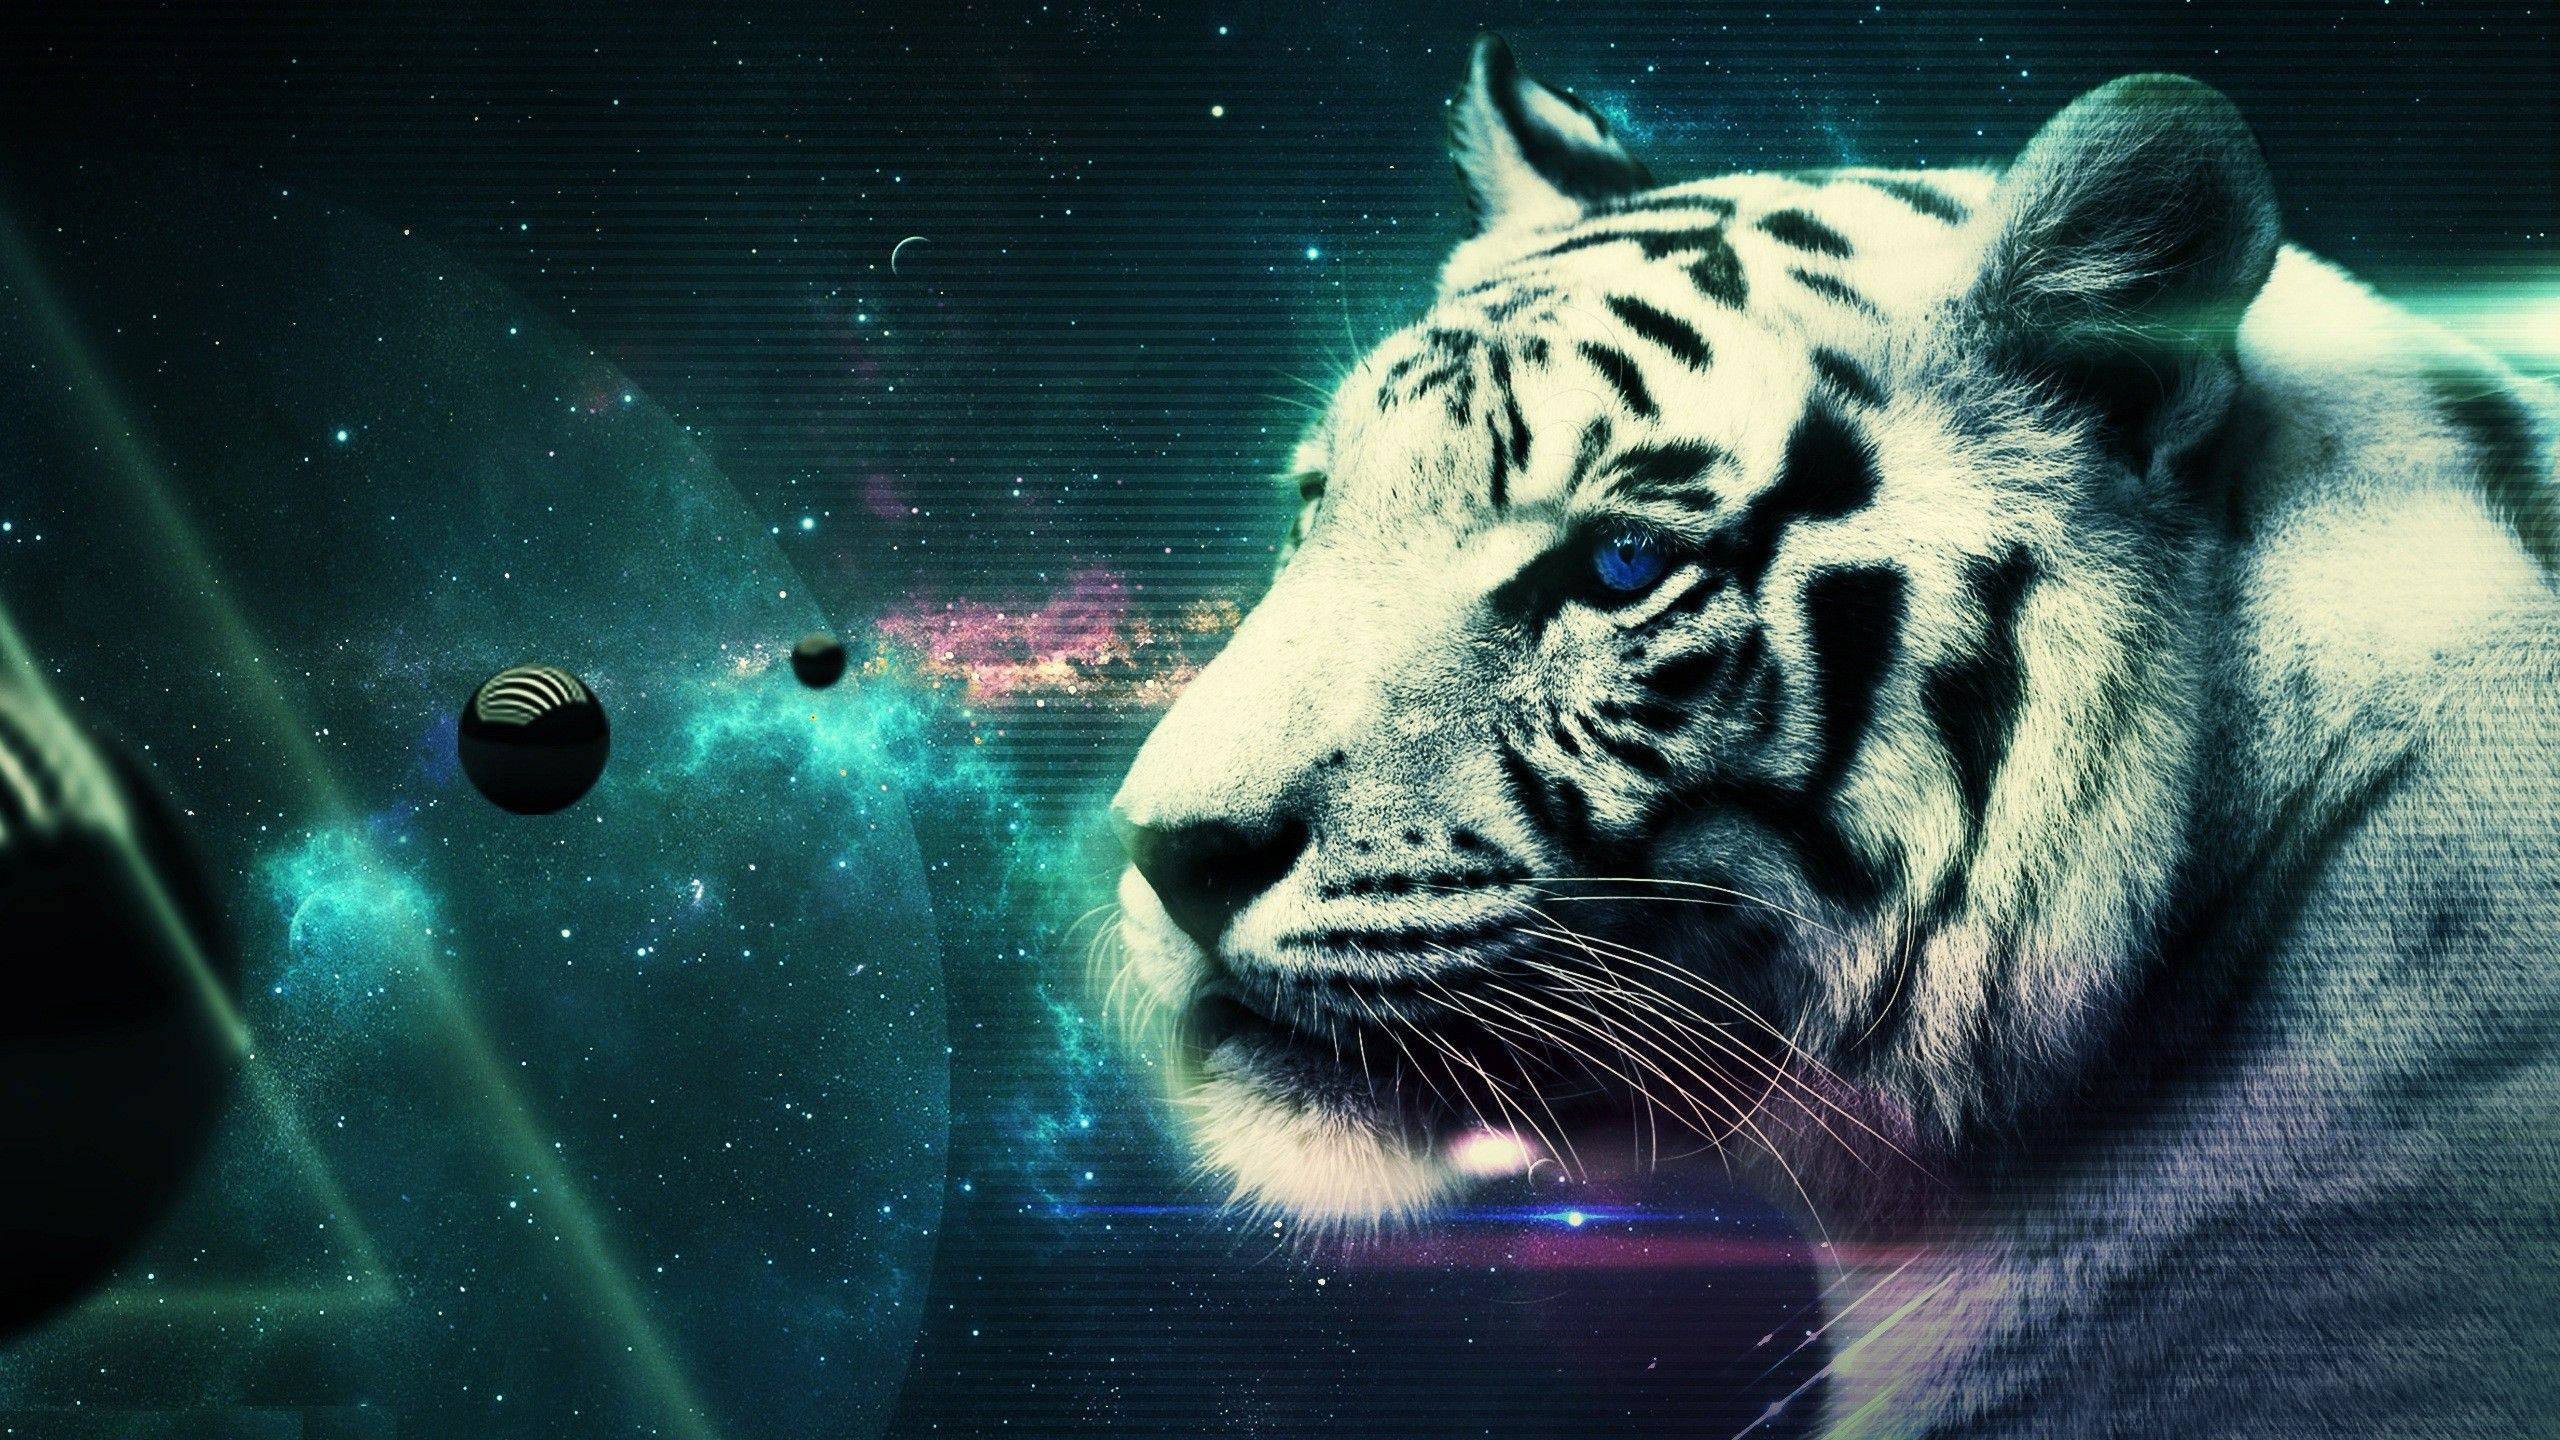 Cool White Tiger Wallpaper 25689 2560x1440 Px HDWallSource